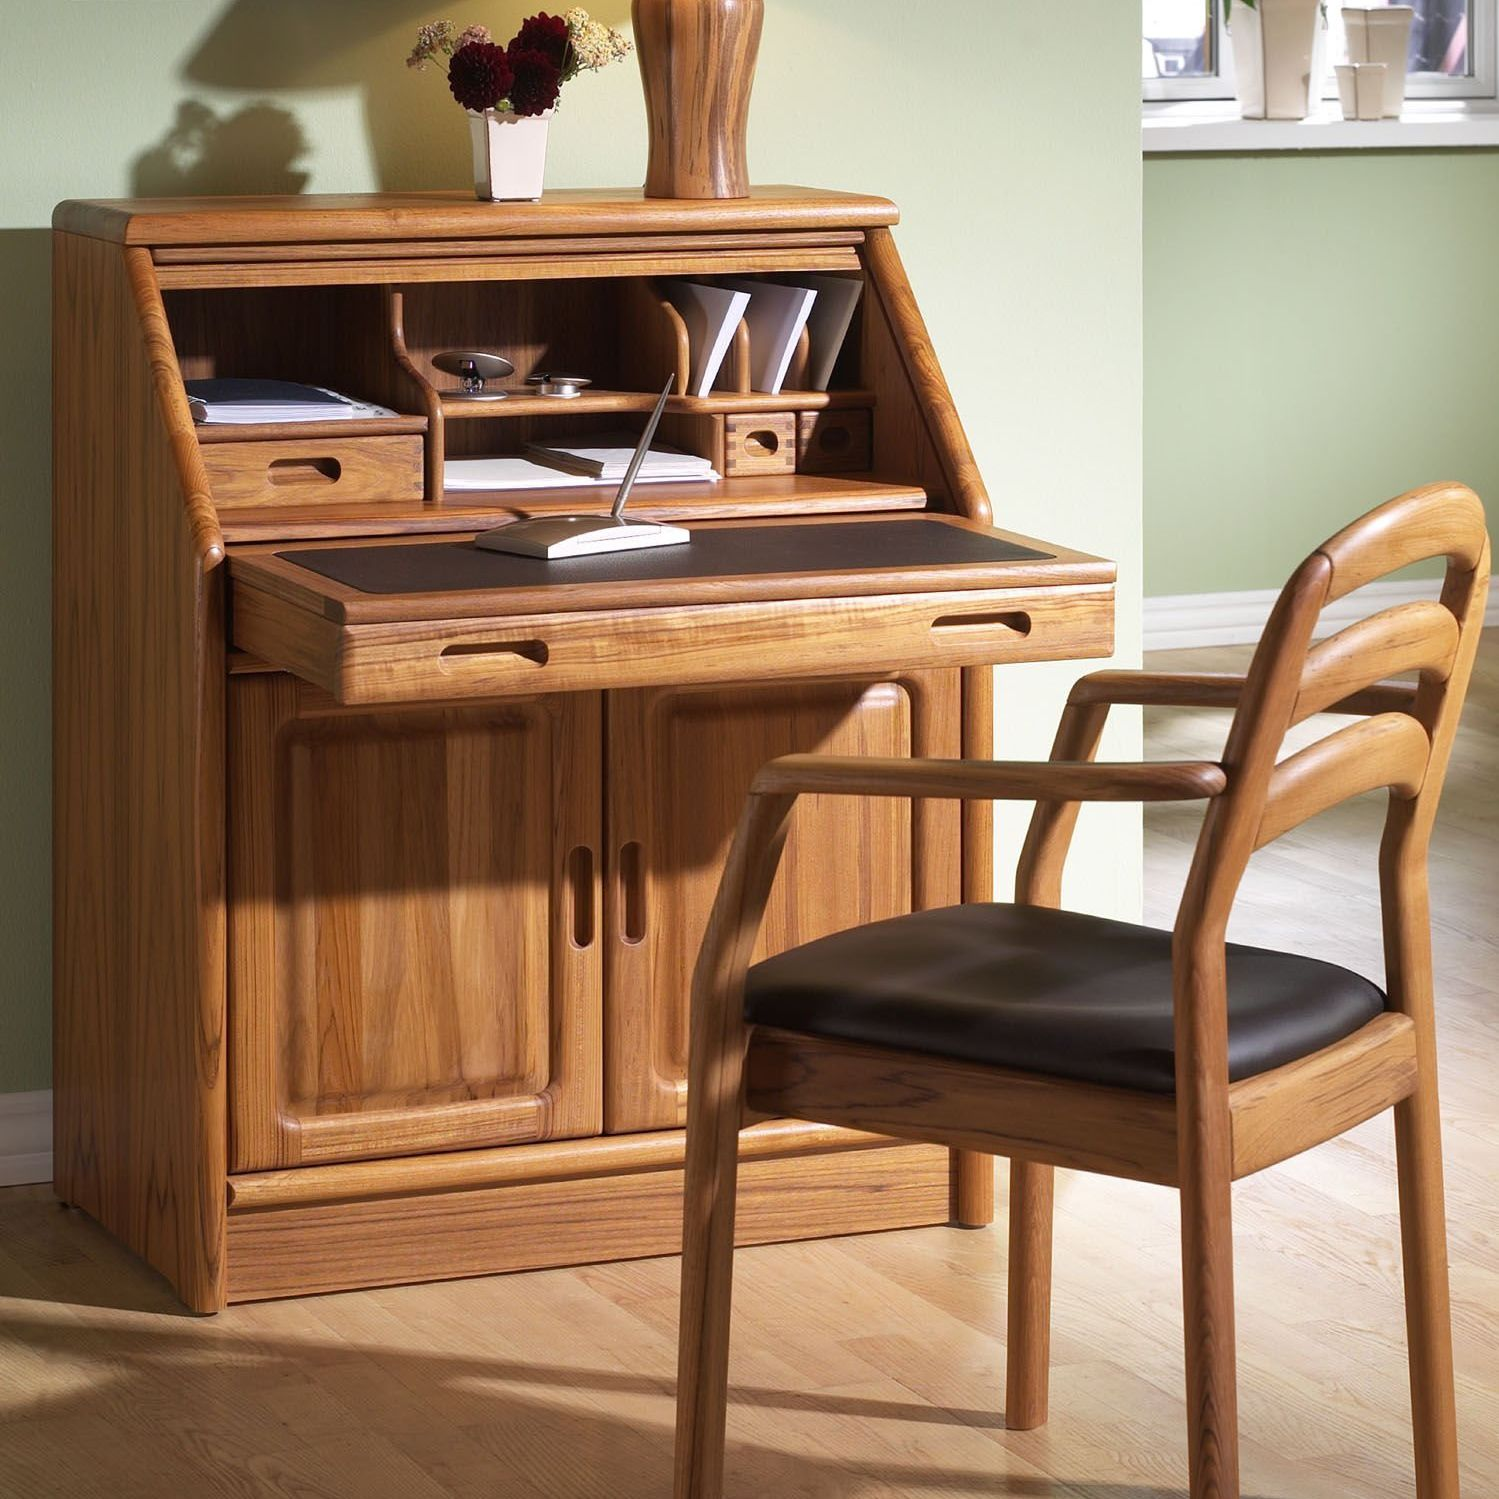 Secretaire Meuble Moderne ~ Myfrdesign.co